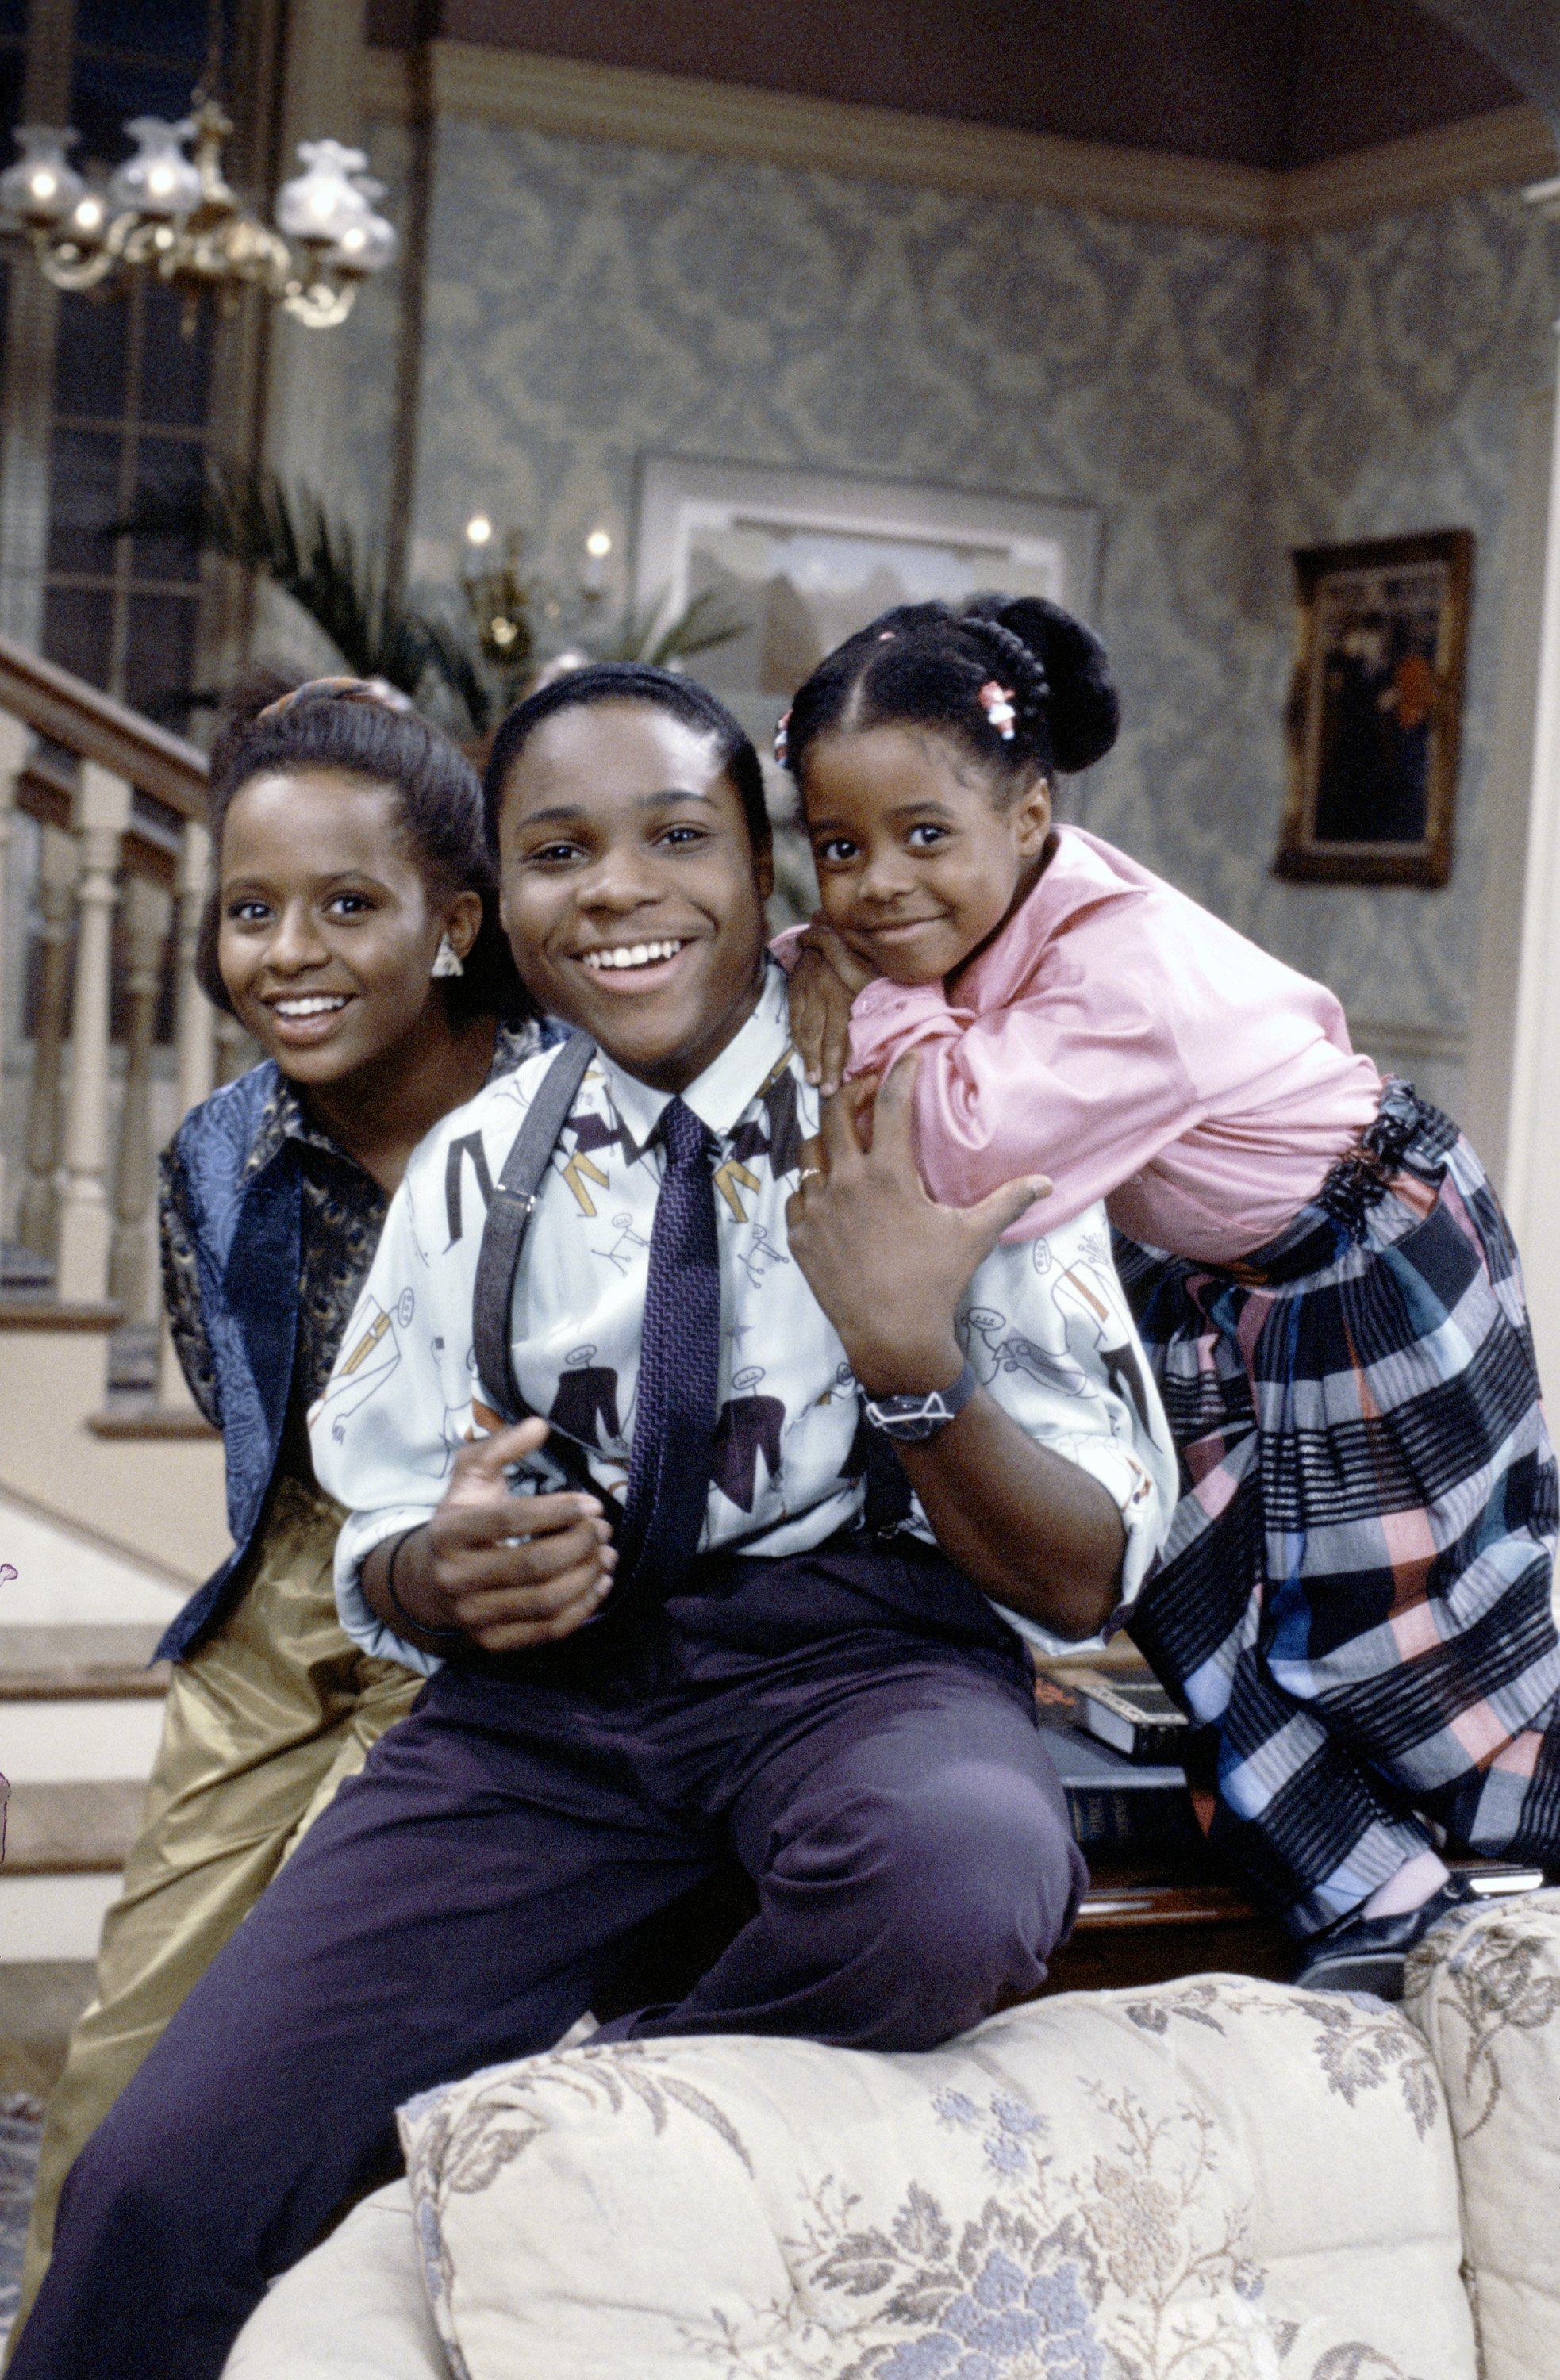 """Tempestt Bledsoe, Malcolm-Jamal Warner and Keshia Knight Pulliam pictured on the set of """"The Cosby Show"""" in an undated photo 